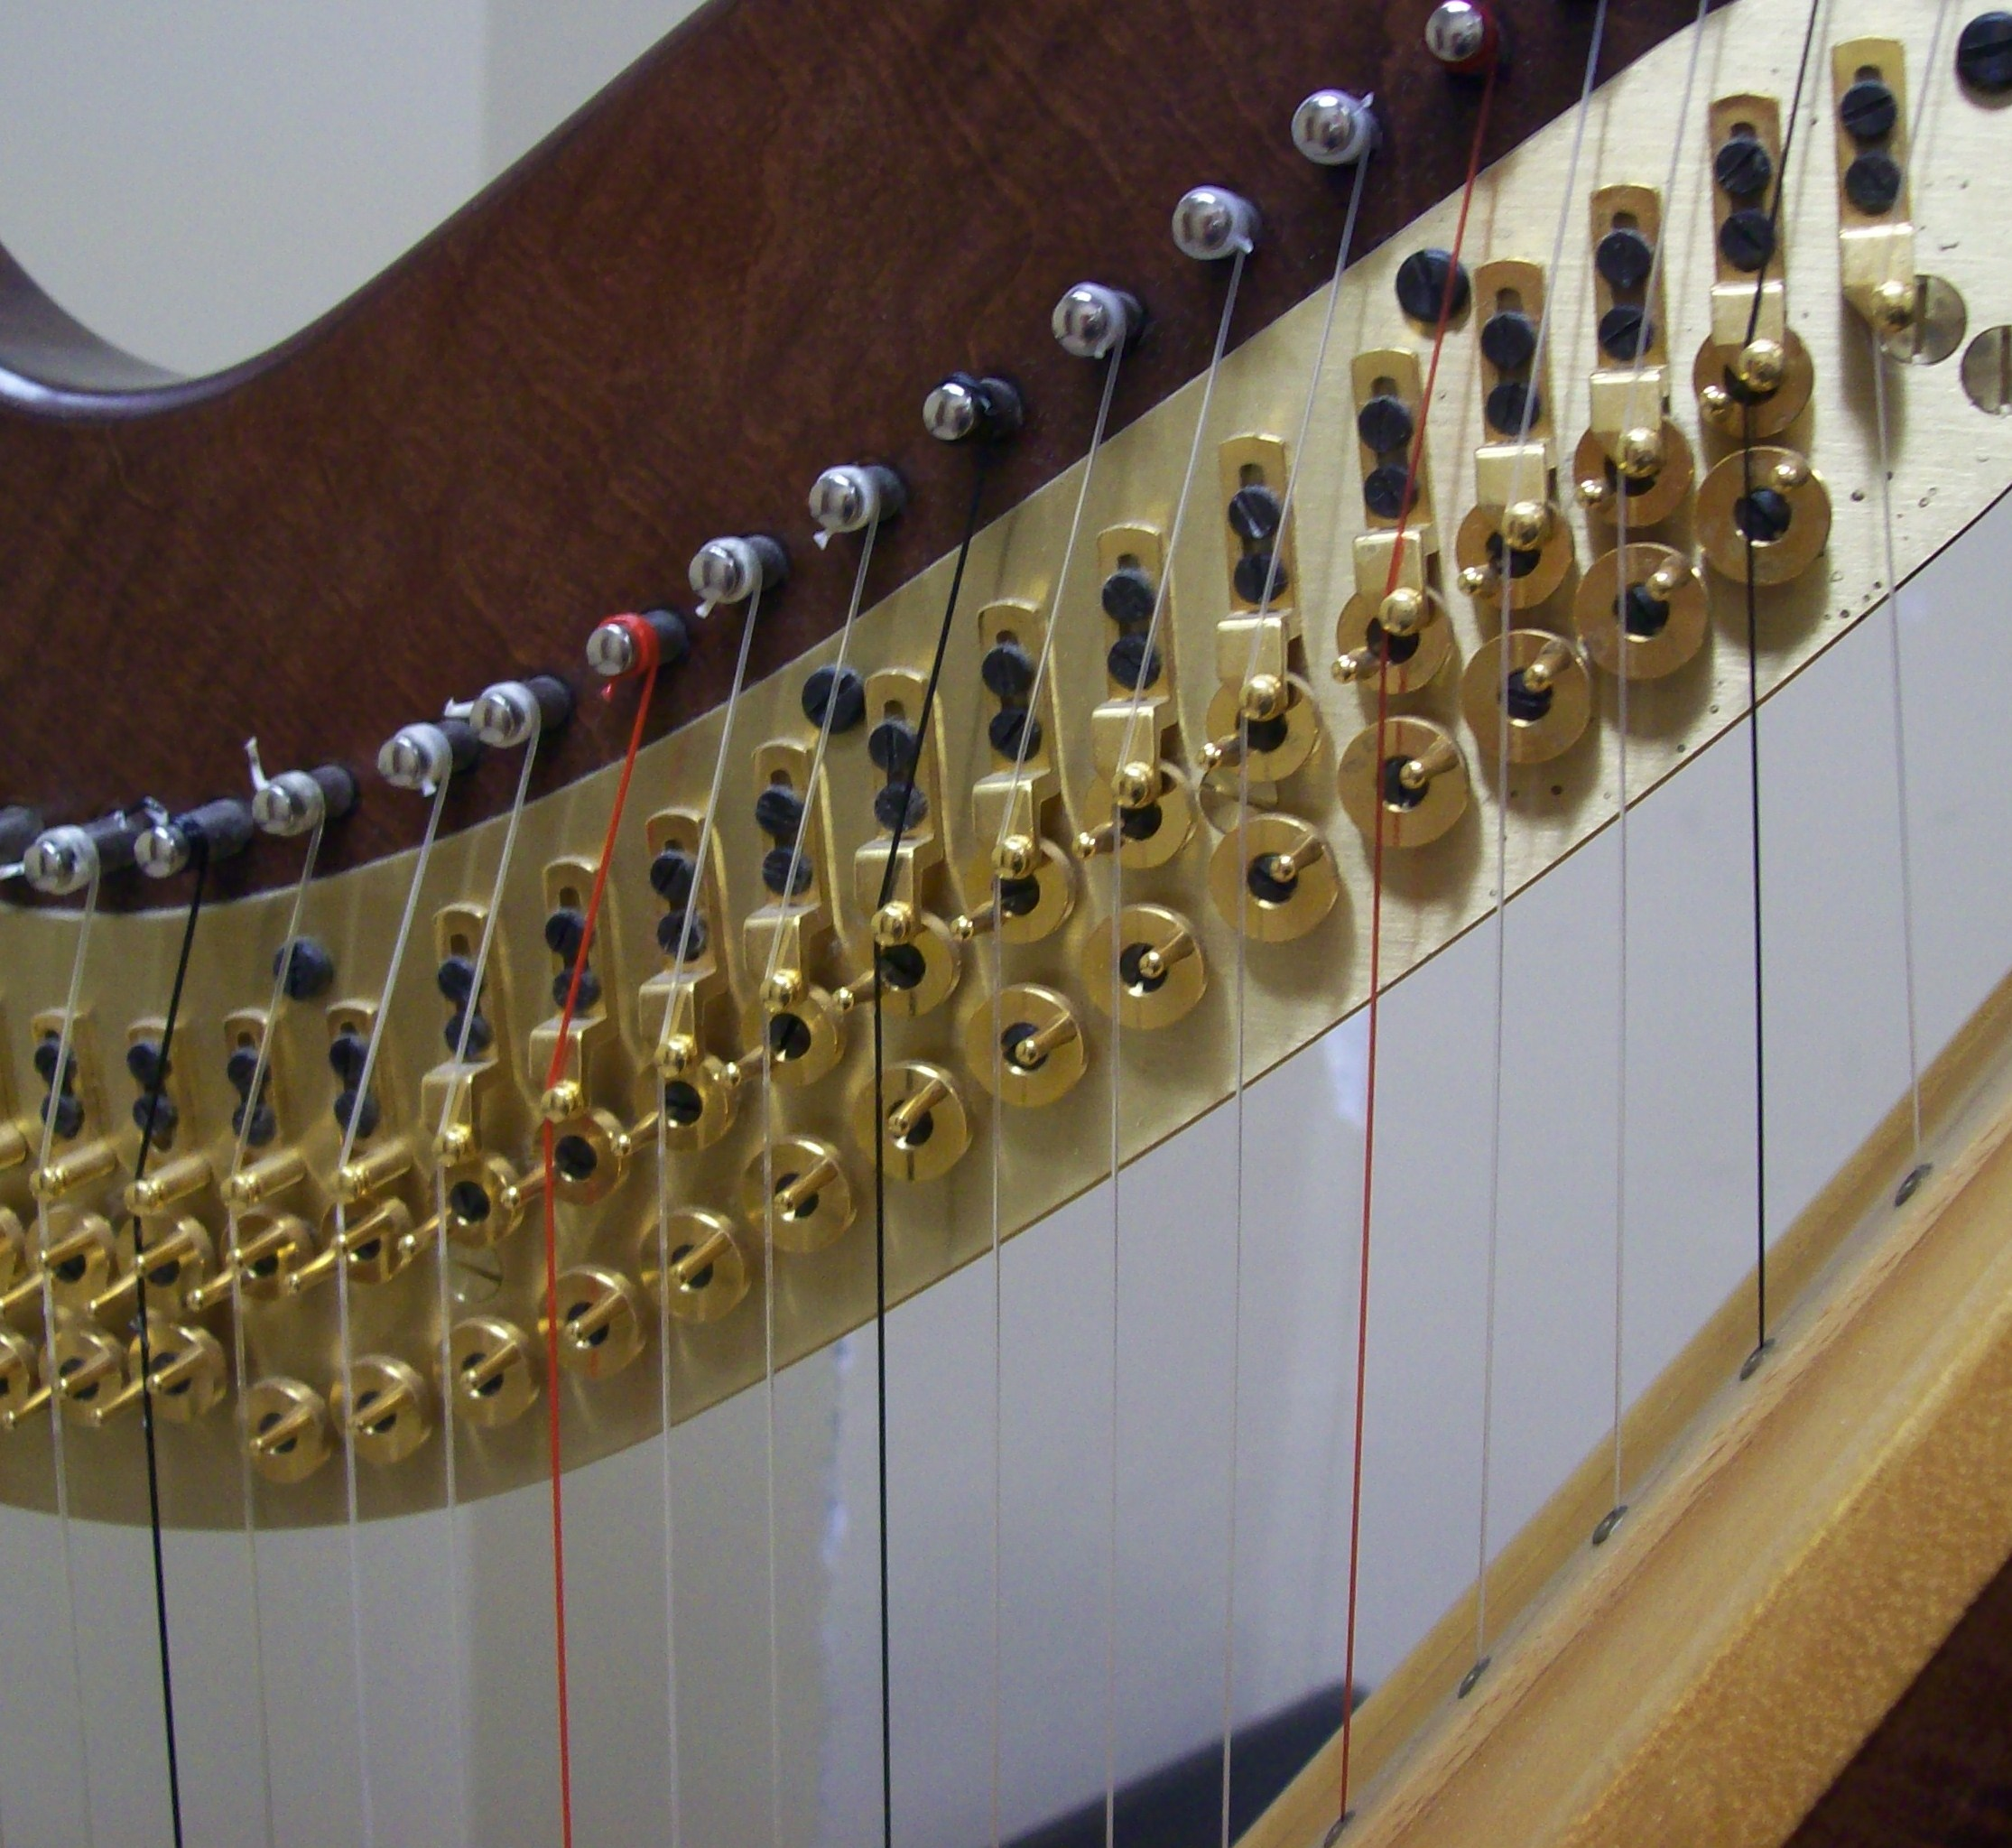 Should you use gut or nylon strings?